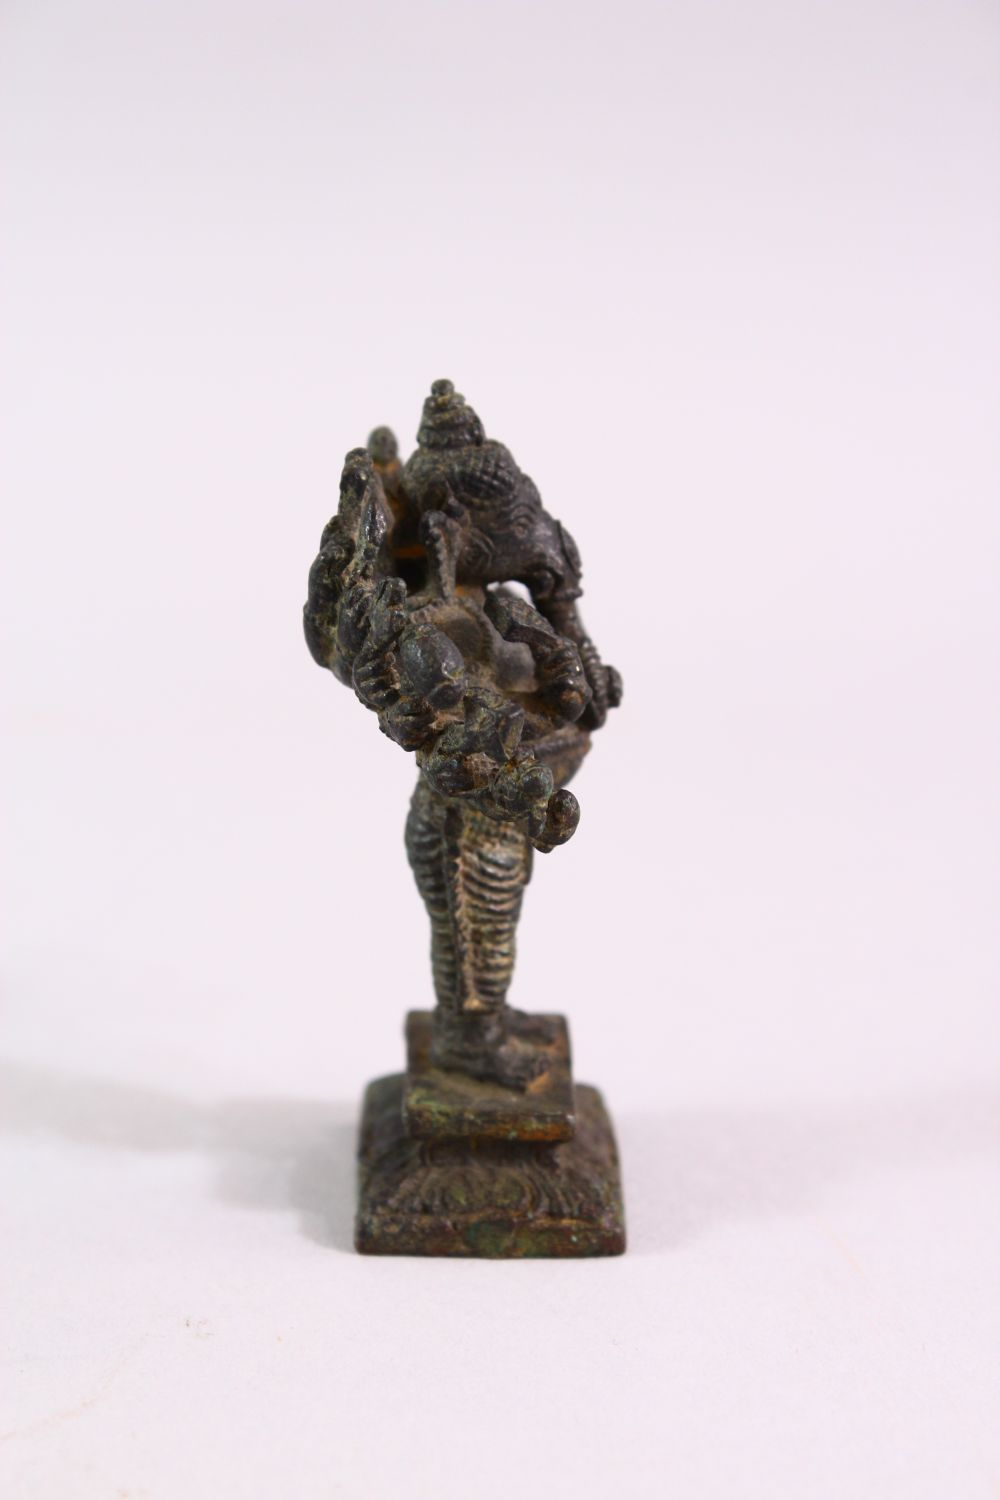 A FINE SMALL EARLY INDIAN BRONZE FIGURE OF GANESH, 7cm high. - Image 3 of 6